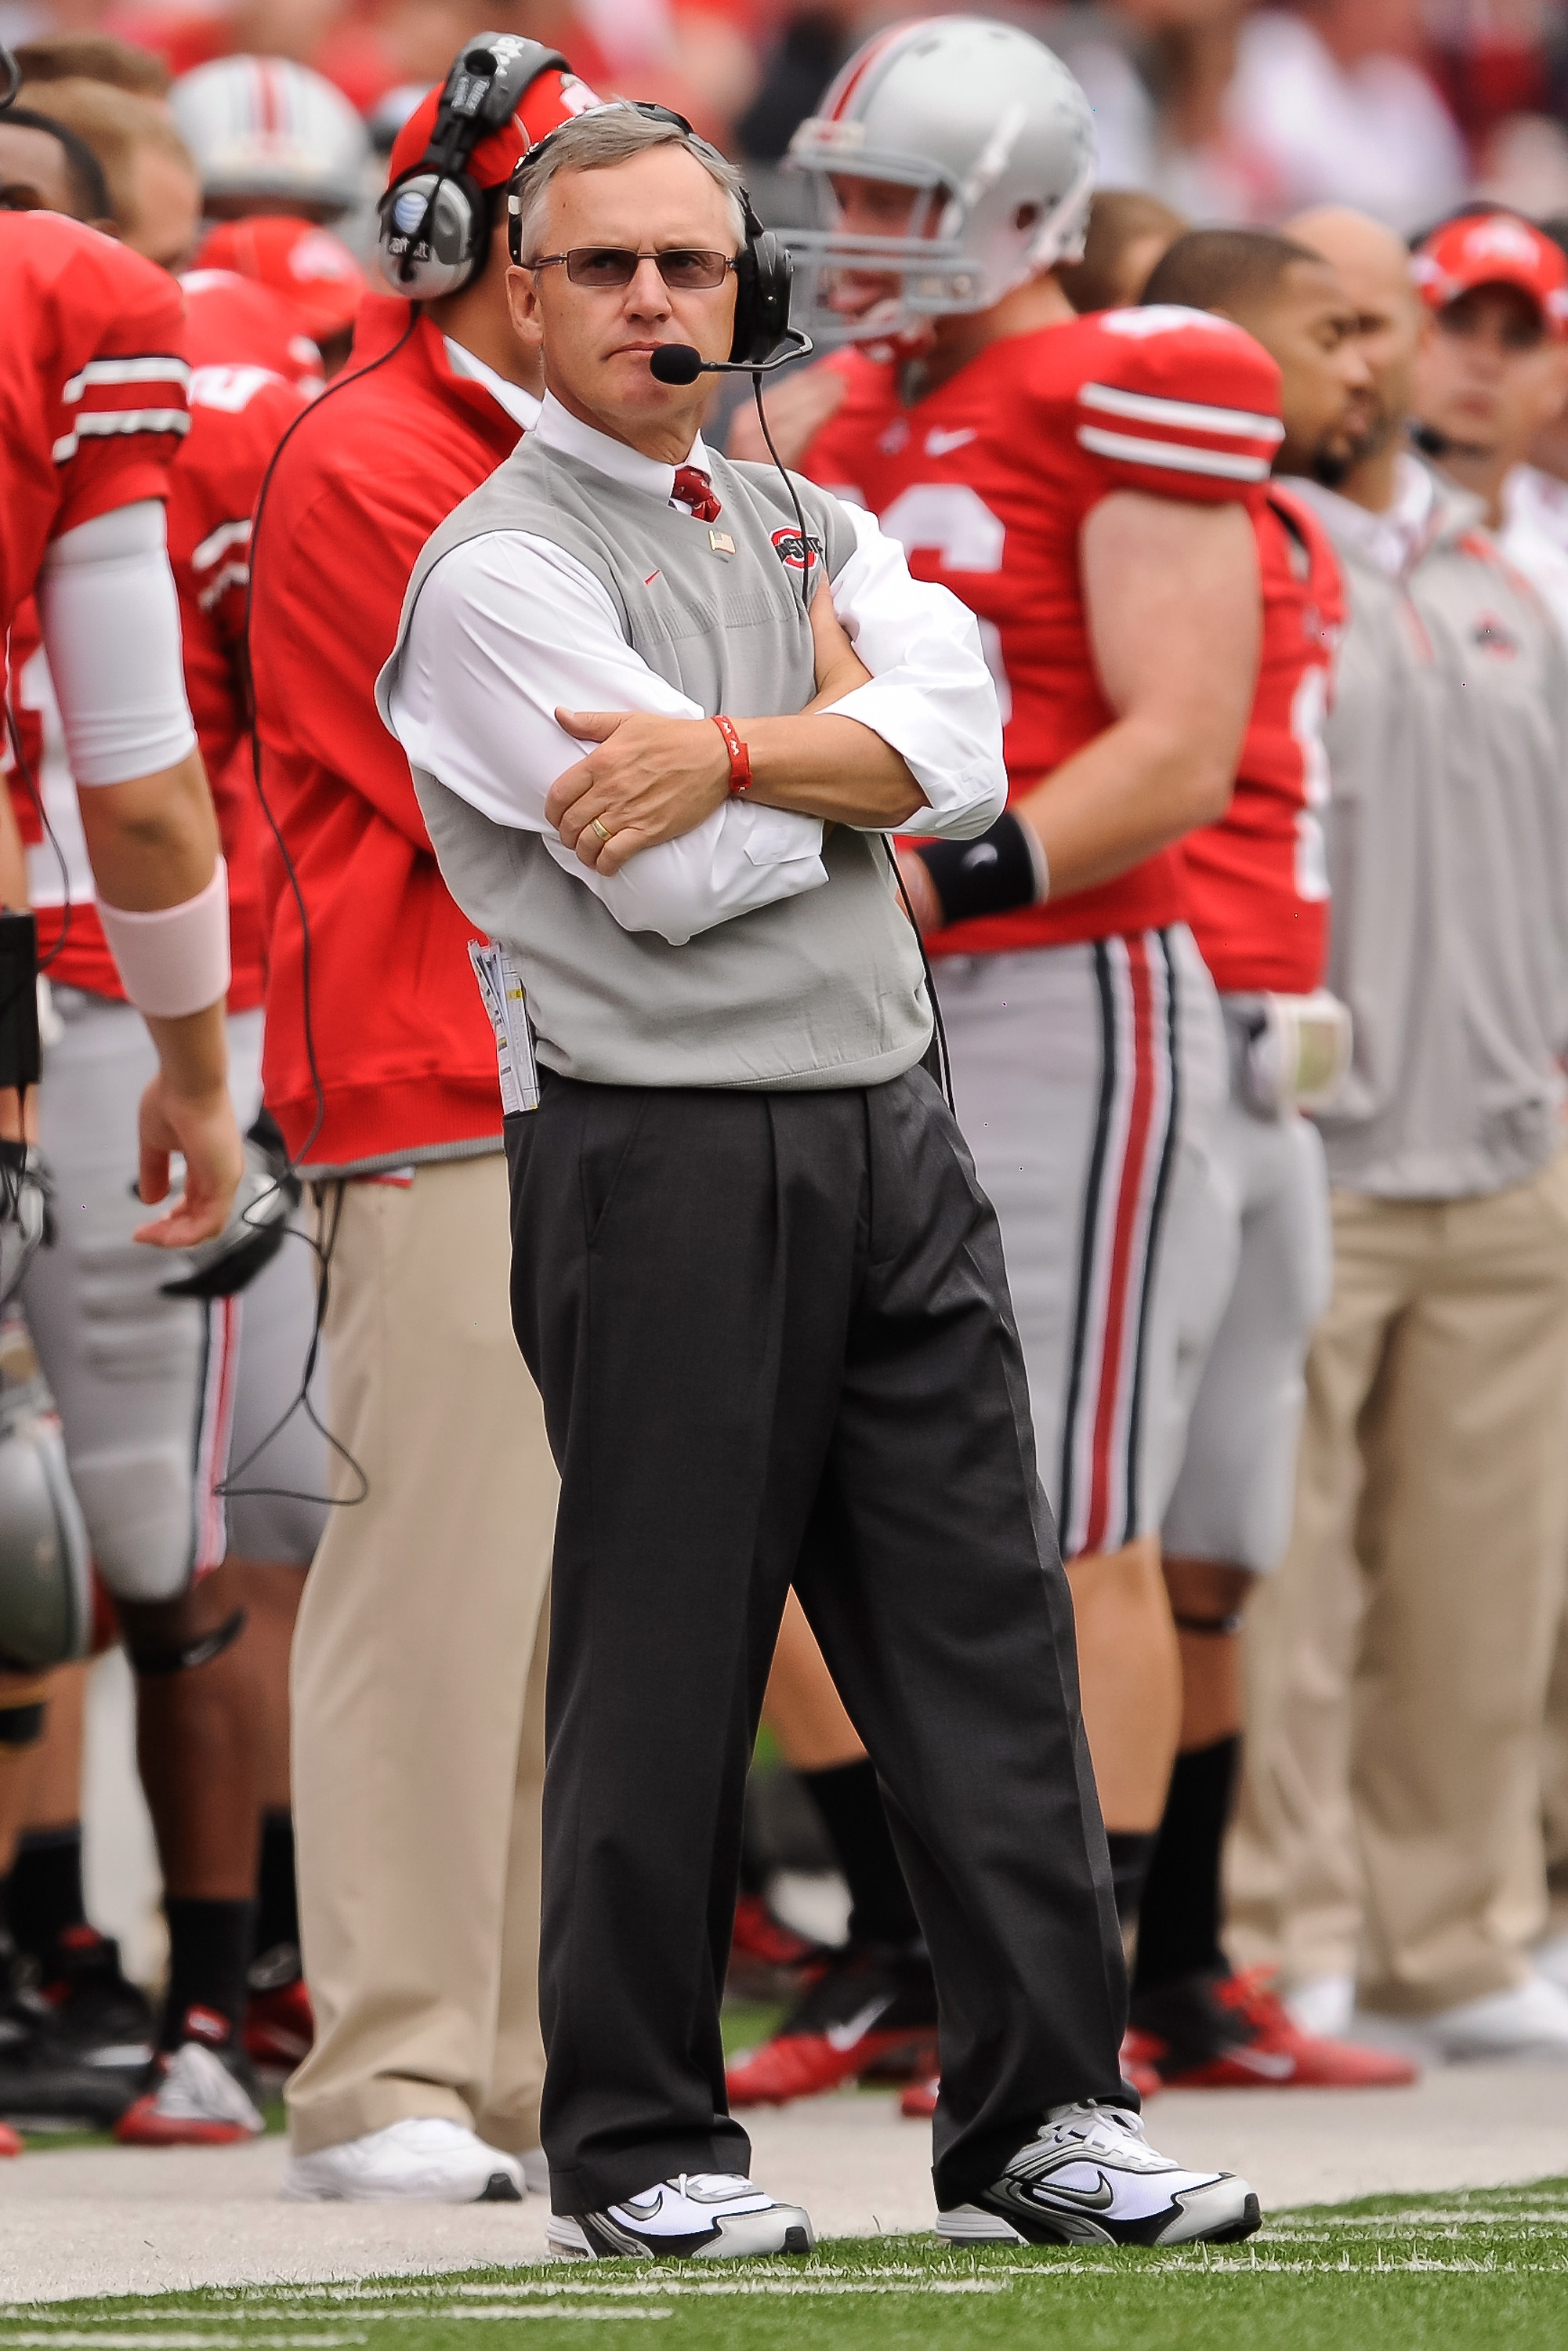 COLUMBUS, OH - OCTOBER 23:  Head Coach Jim Tressel of the Ohio State Buckeyes watches his team play the Purdue Boilermakers at Ohio Stadium on October 23, 2010 in Columbus, Ohio.  (Photo by Jamie Sabau/Getty Images)